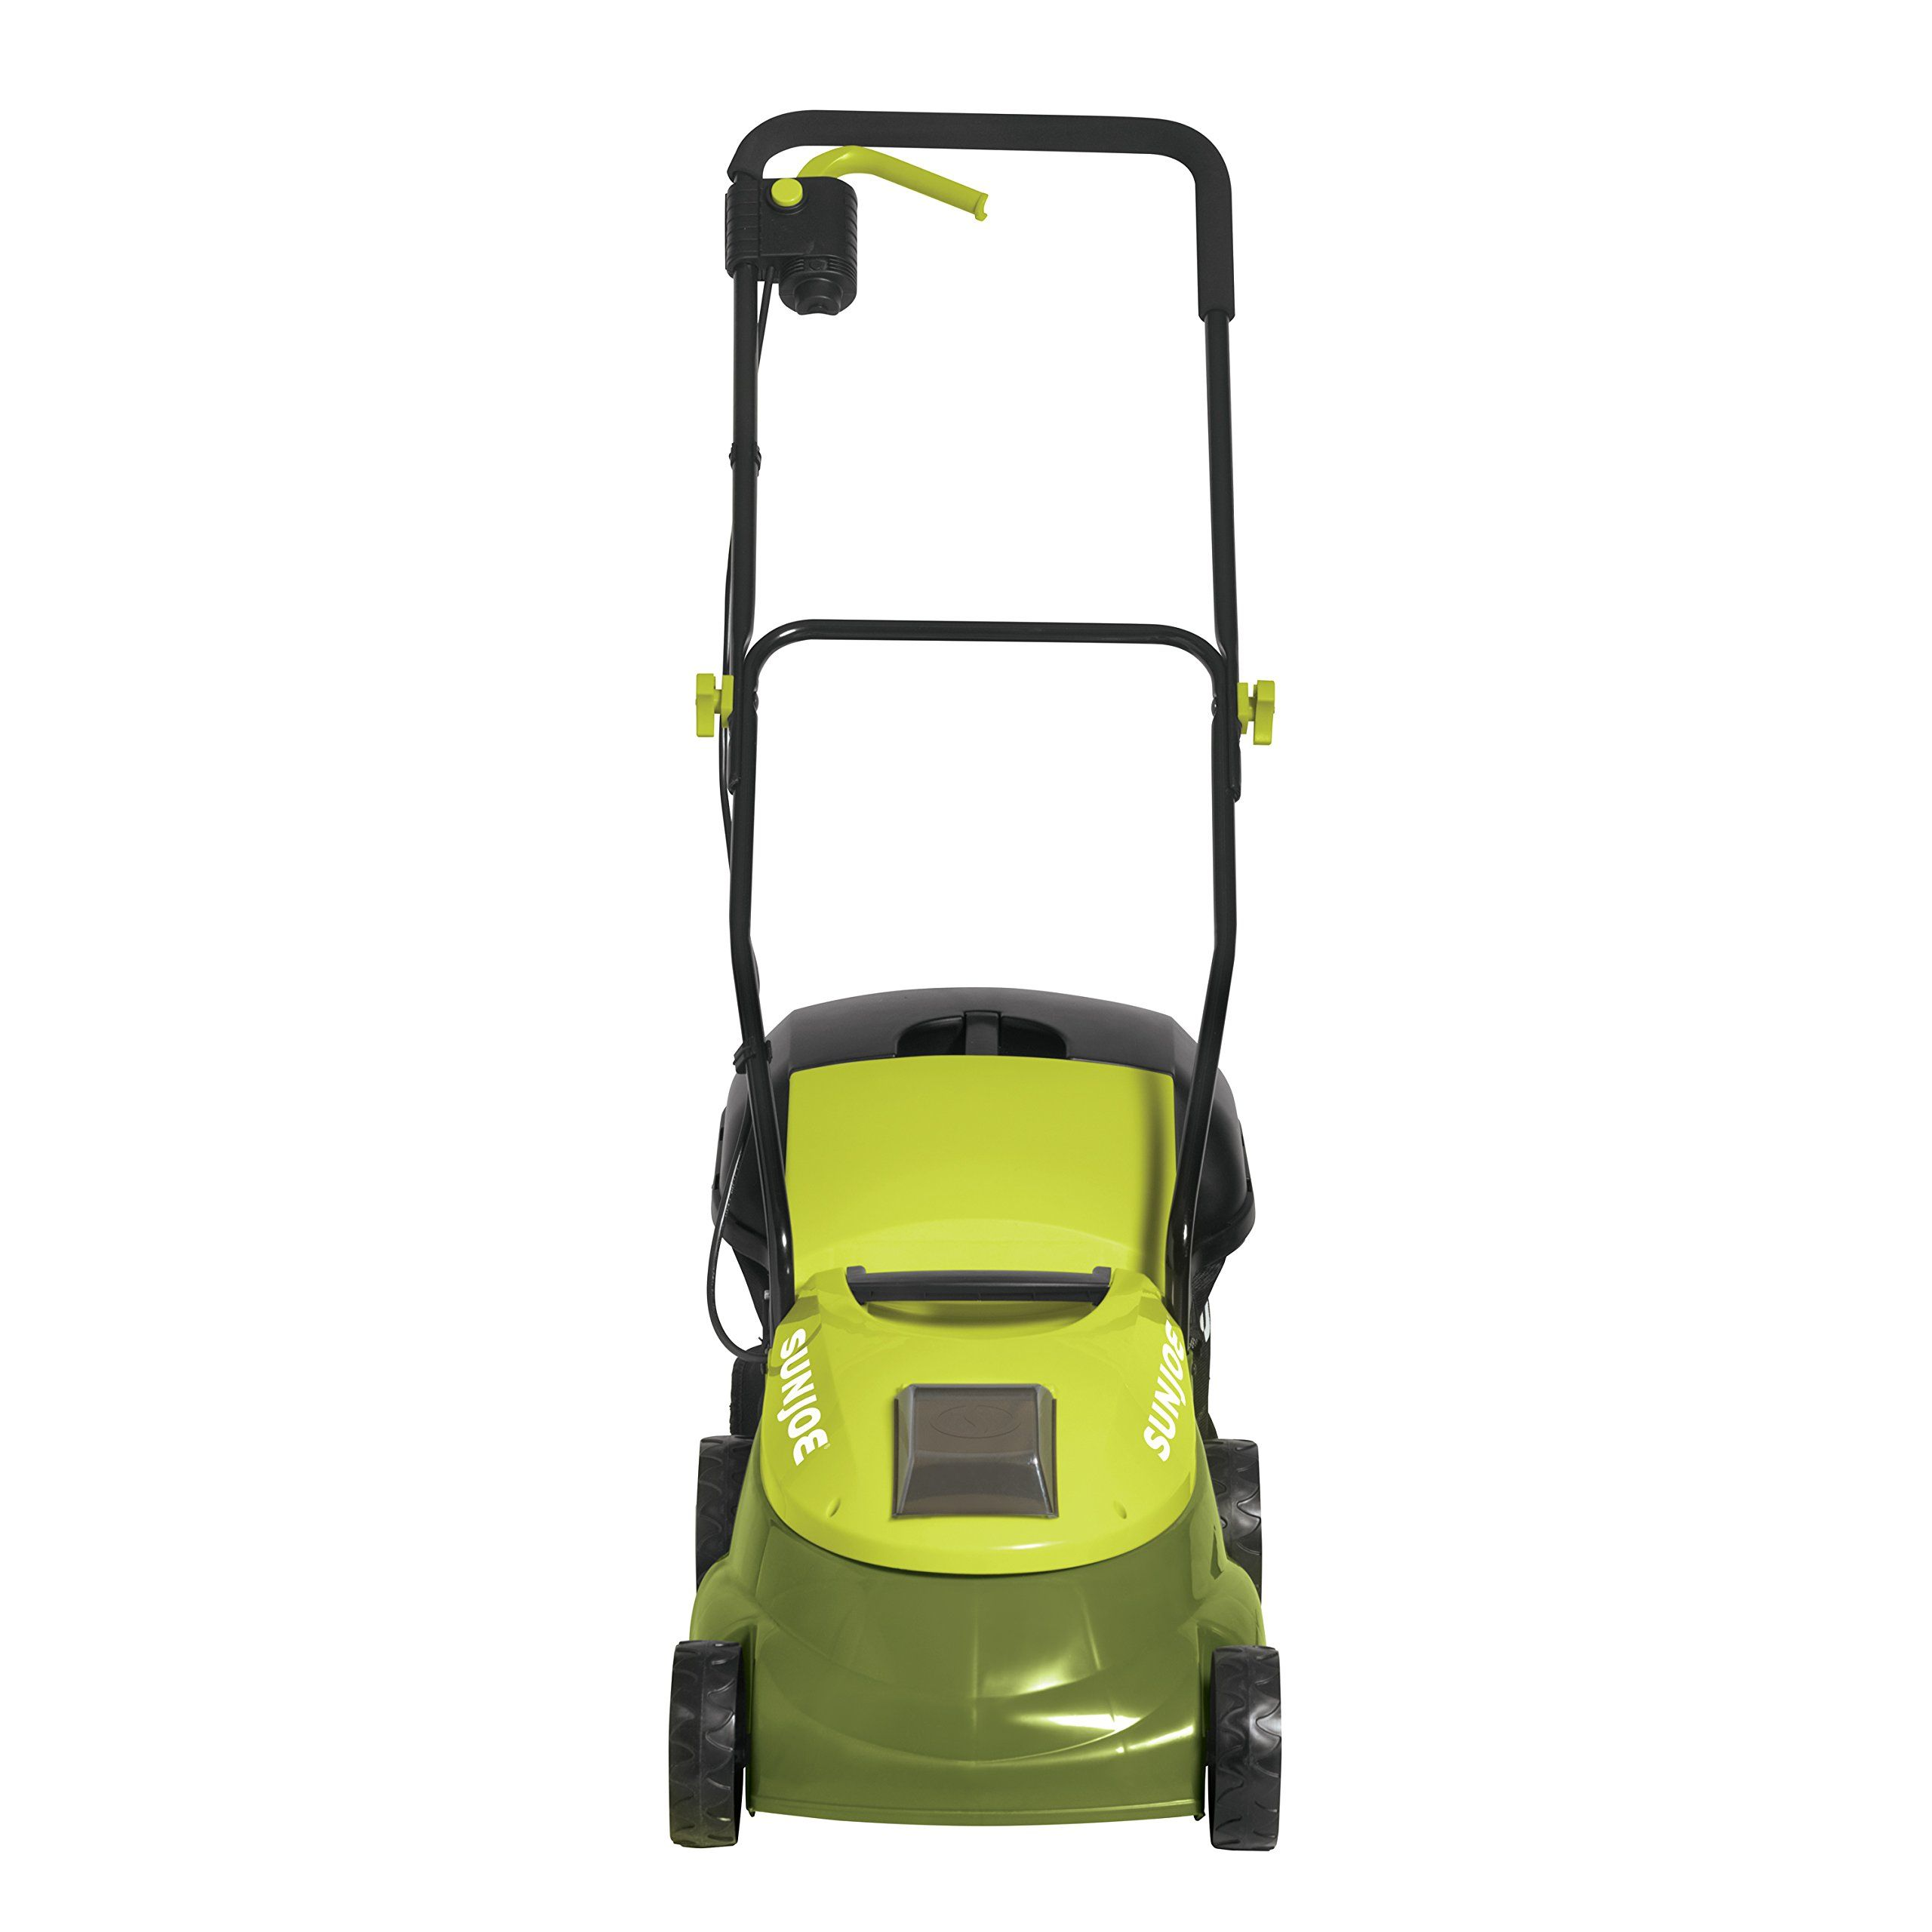 Sun Joe Mj401cxr Mow Joe Cordless Lawn Mower Green Click Picture To Evaluate Even More Information This Is Cordless Lawn Mower Push Lawn Mower Lawn Mower